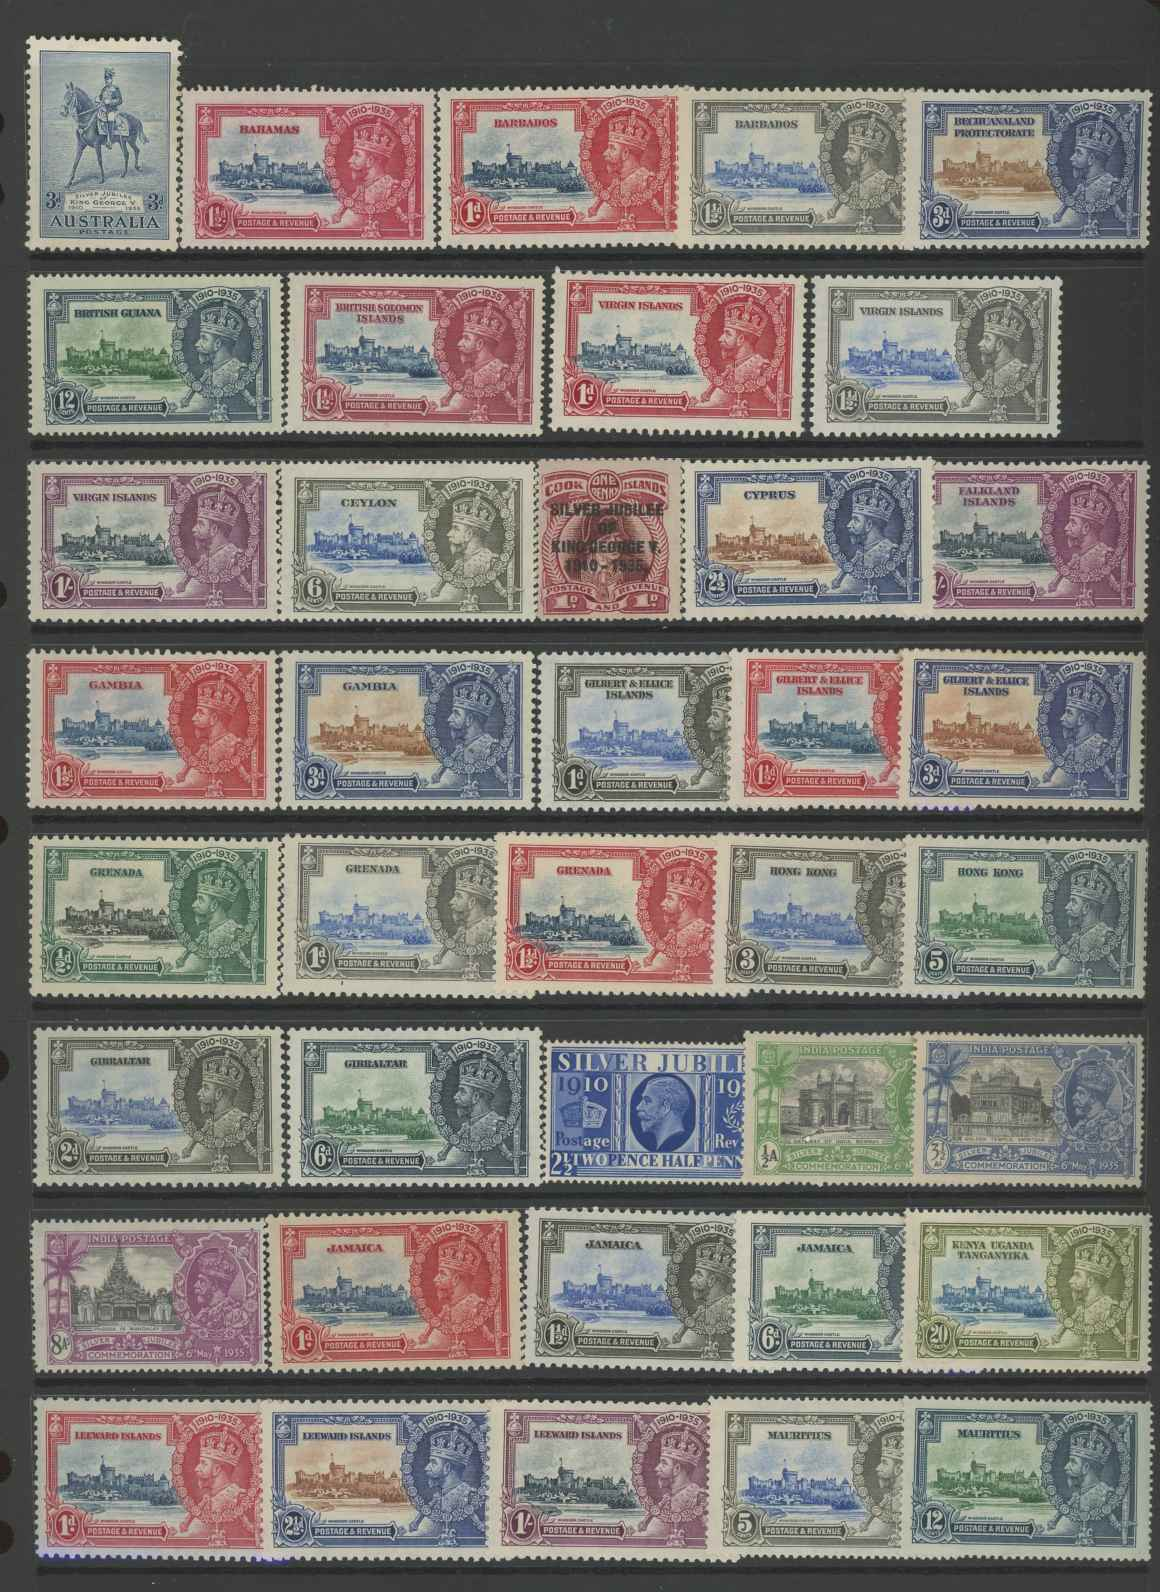 1935 Silver Jubilee odd values to 1/- Mint on Hagner sheets. - Image 3 of 4